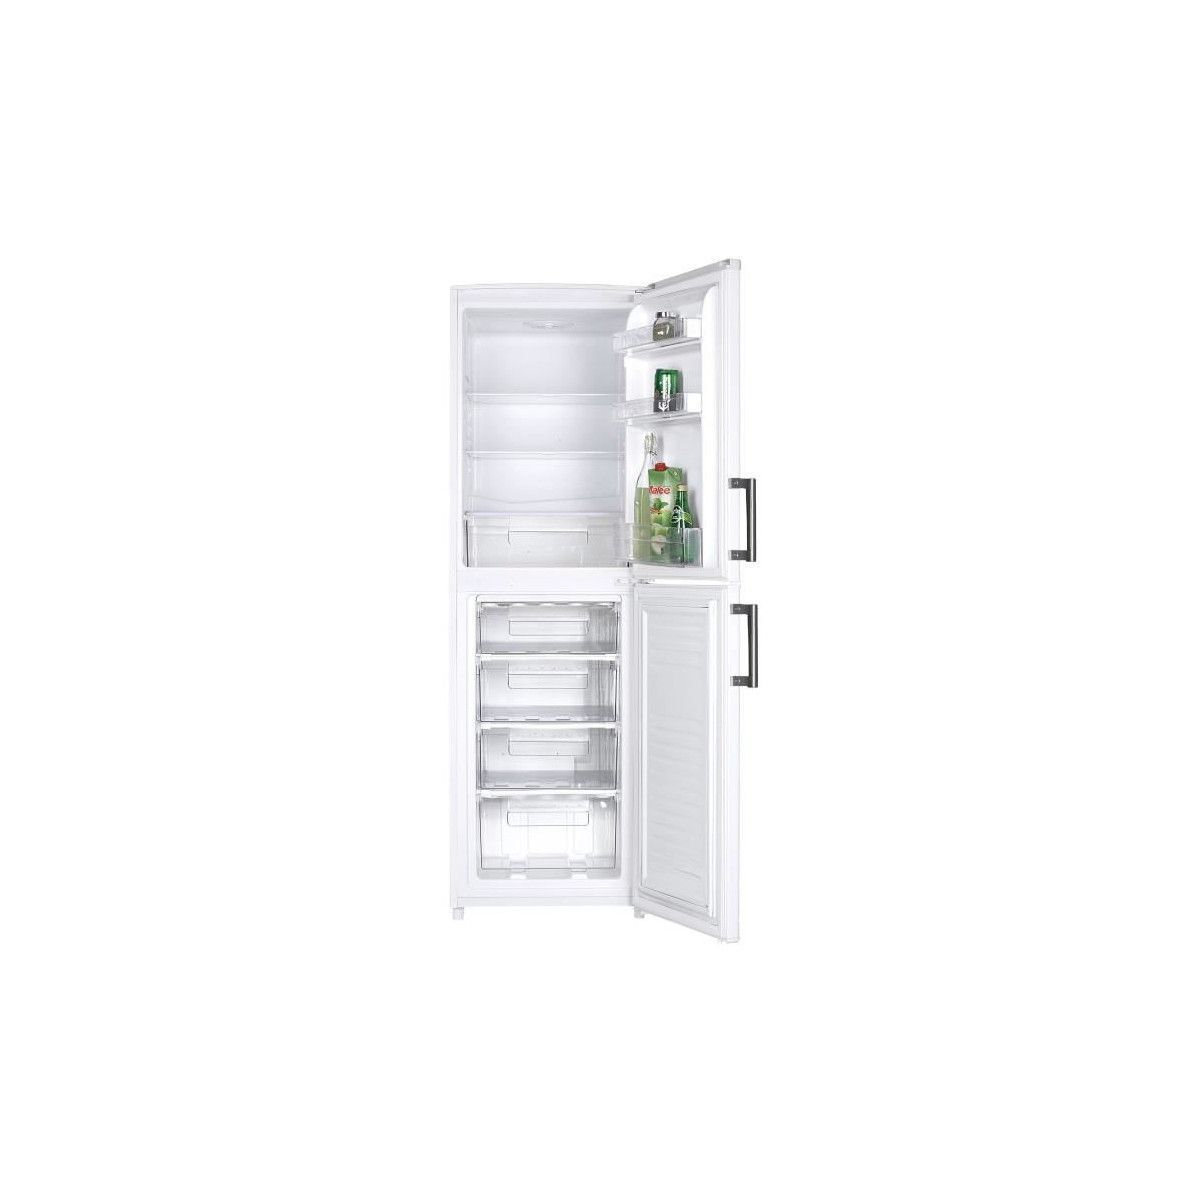 Hbm 576wm Refrigerateur Congelateur Bas 246l 143 103 Froid Statique A L 55cm X H 174 5cm In 2019 Products Refrigerateur Congelateur Froid Degi